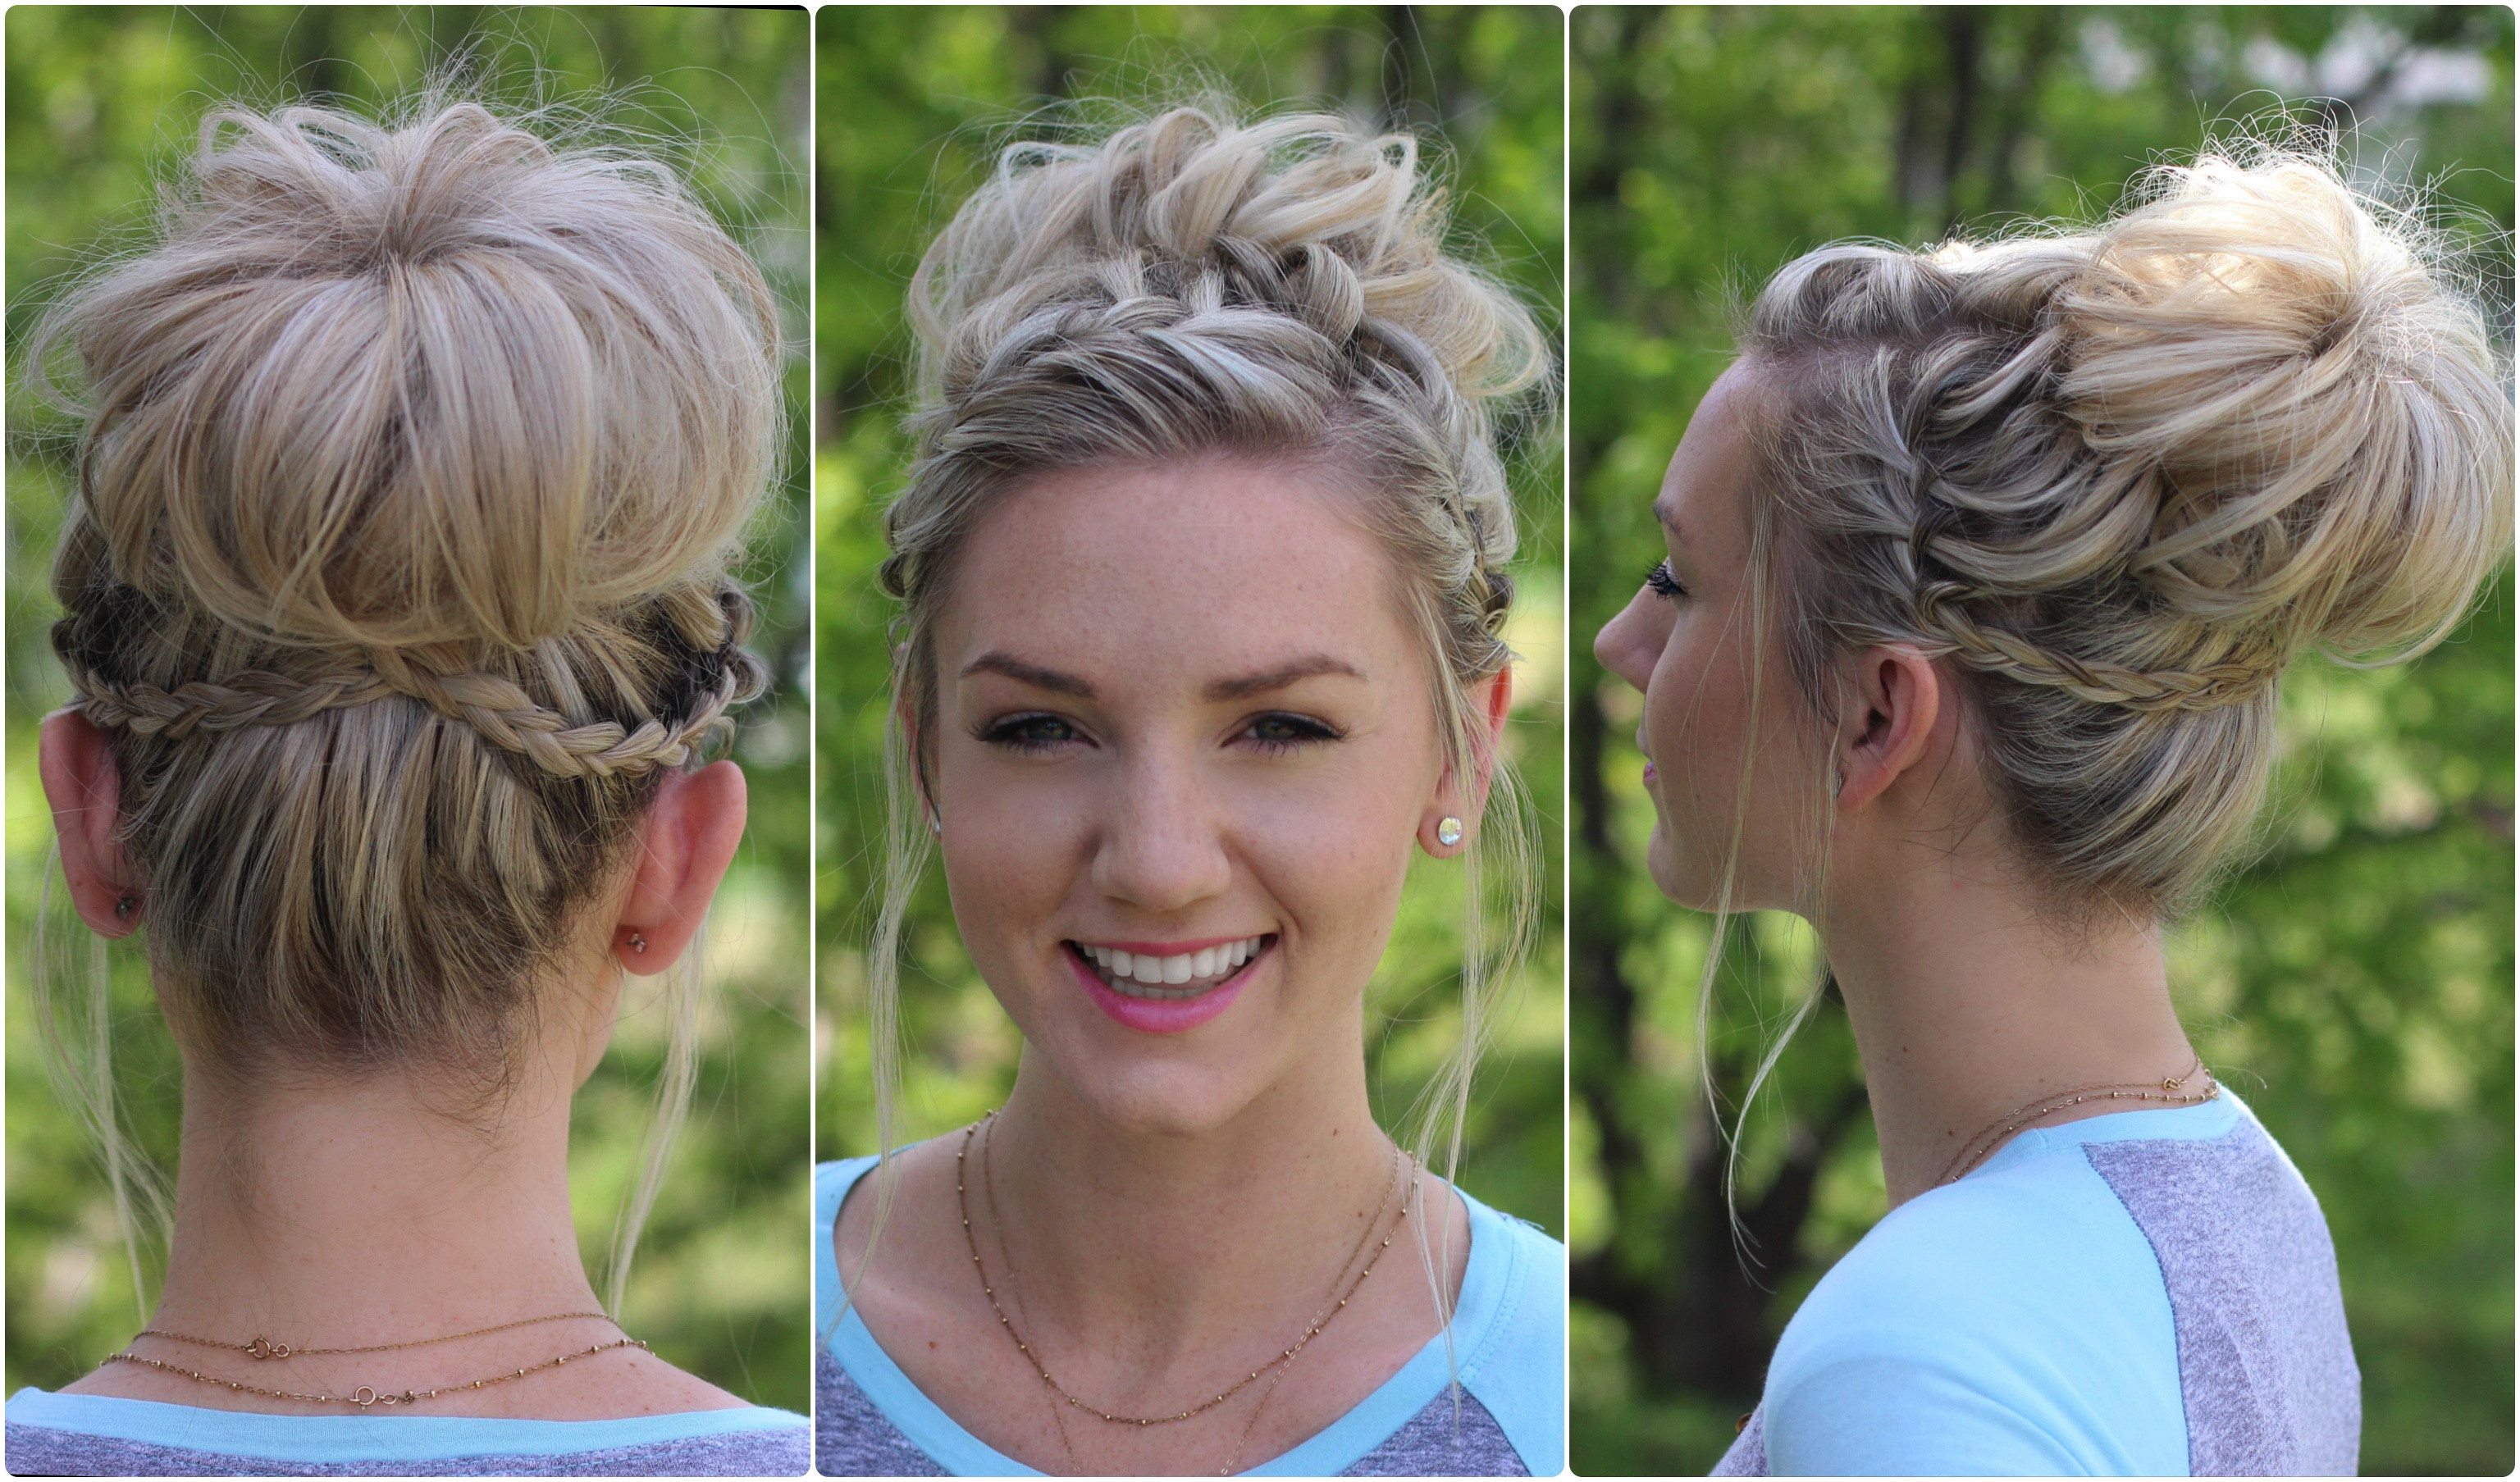 Best ideas about Bun Hairstyles For Girls . Save or Pin Waterfall Bun Updo Now.